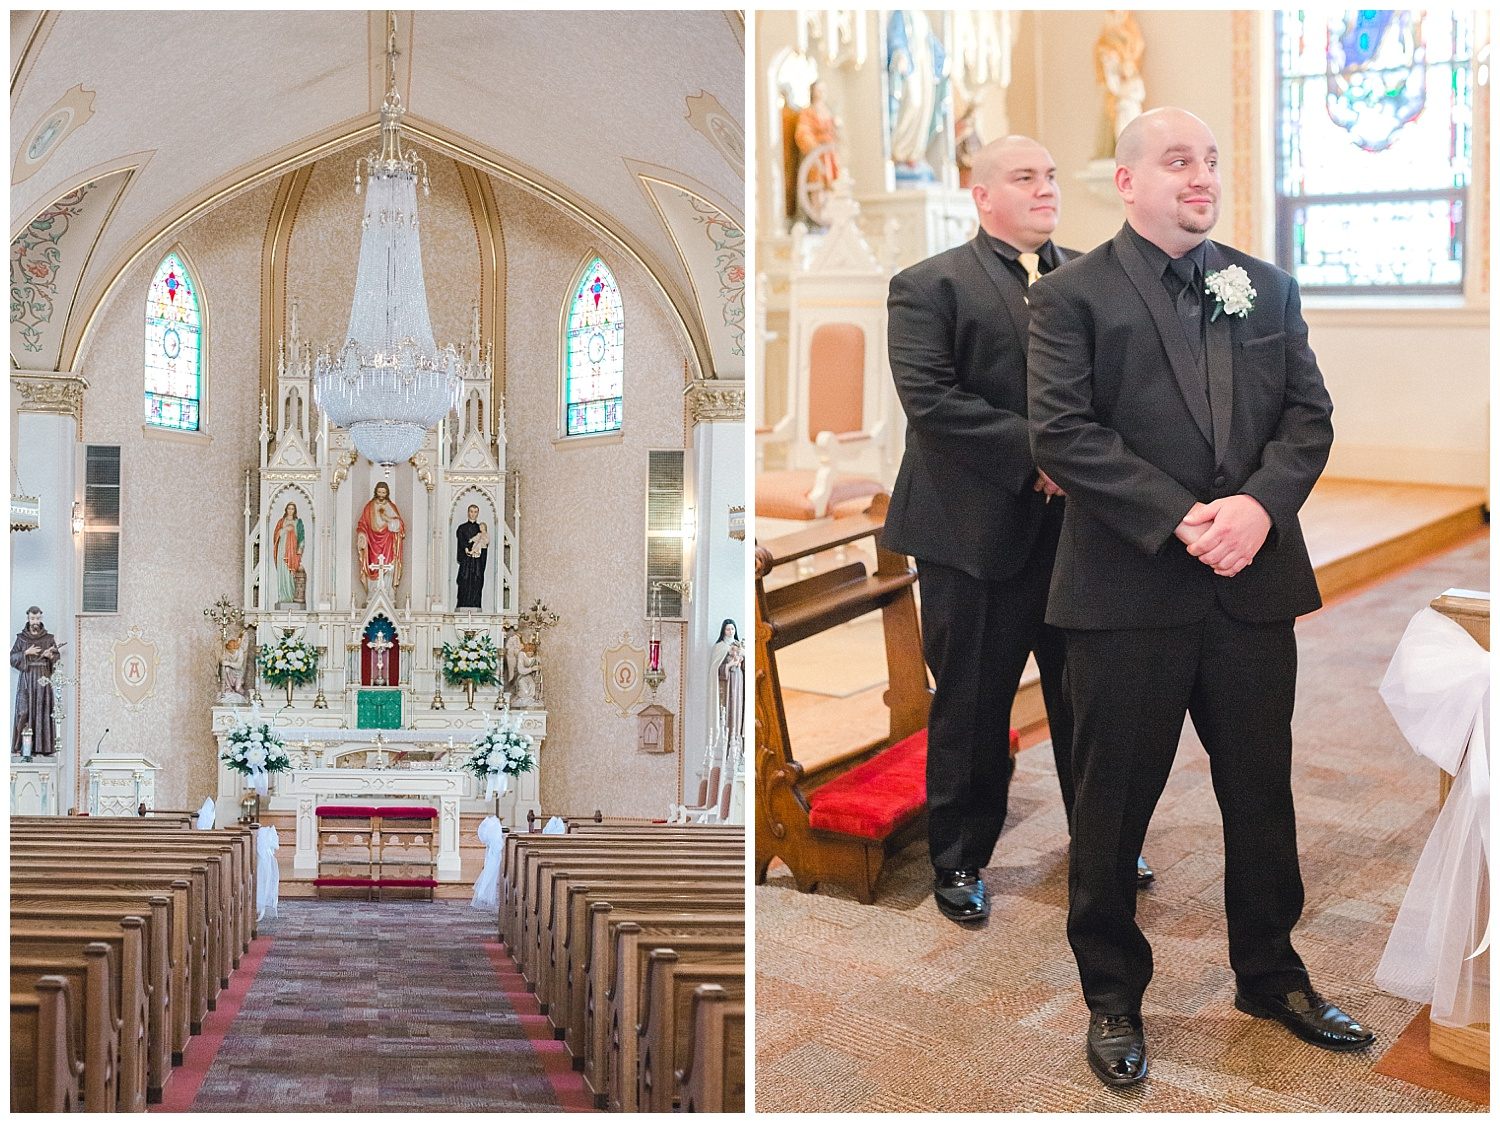 A Black and Gold Catholic Church Wedding in Wilkes Barre Pennsylvania by lehigh valley pennsylvania based wedding and lifestyle photographer Jeannie Lytle of Lytle Photography   Company (13).jpg